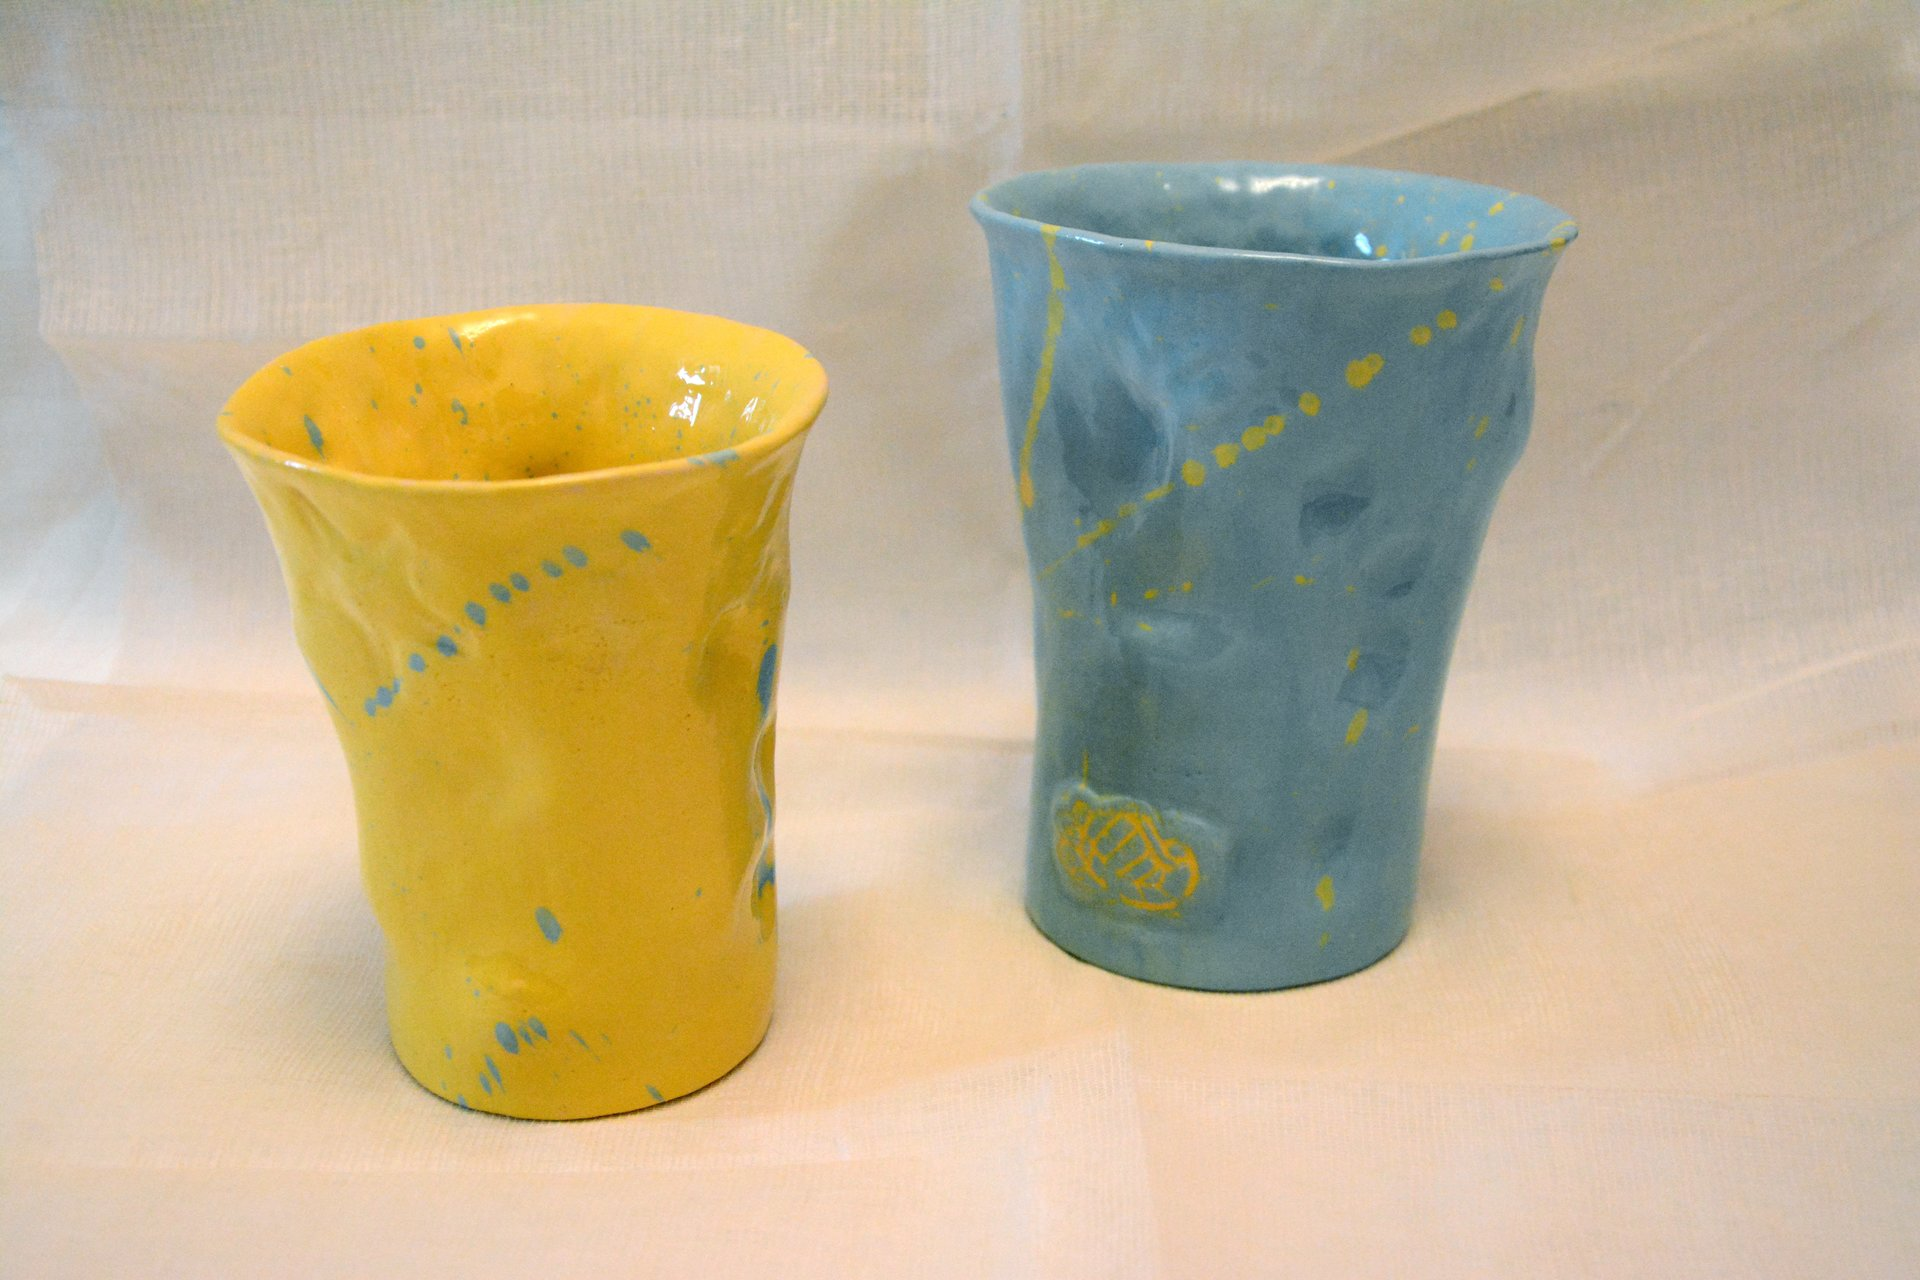 Pair of glasses Yellow and Blue - Cups, glasses, mugs, height - 12 cm, diameter at the top edge - 10 cm, diameter on the bottom - 6.5 cm, photo 1 of 1.